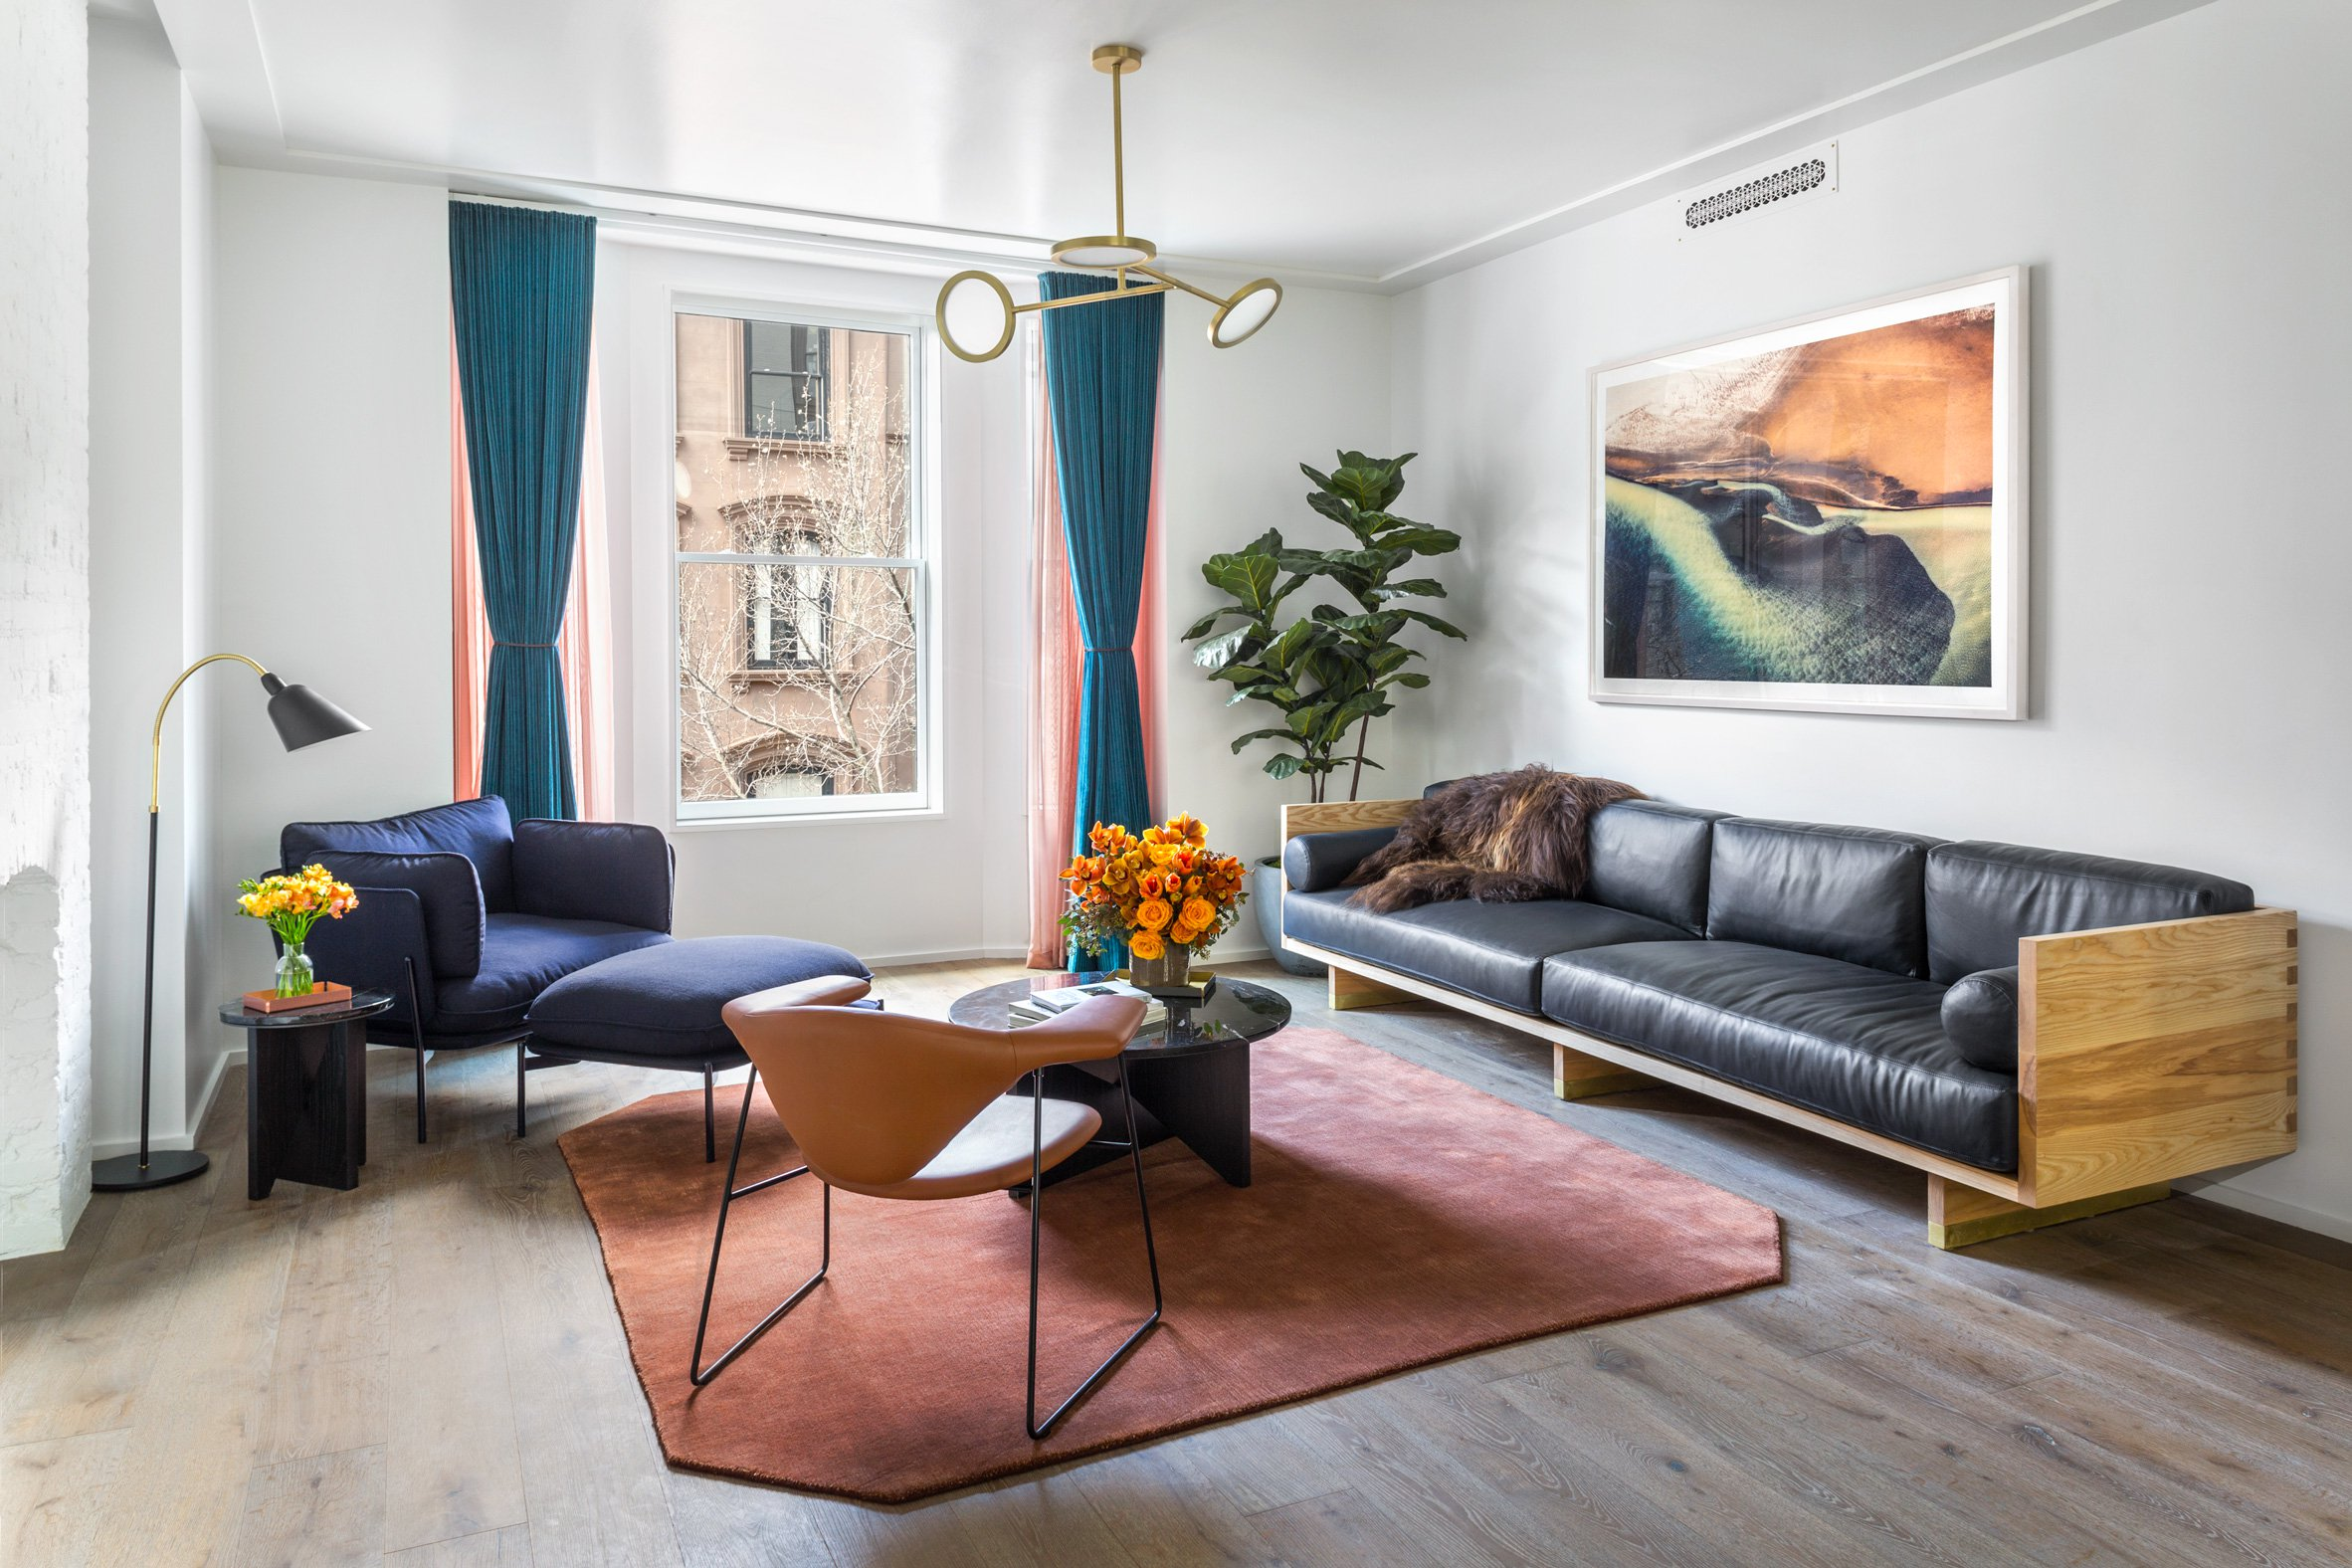 Interior design curbed for The model apartment